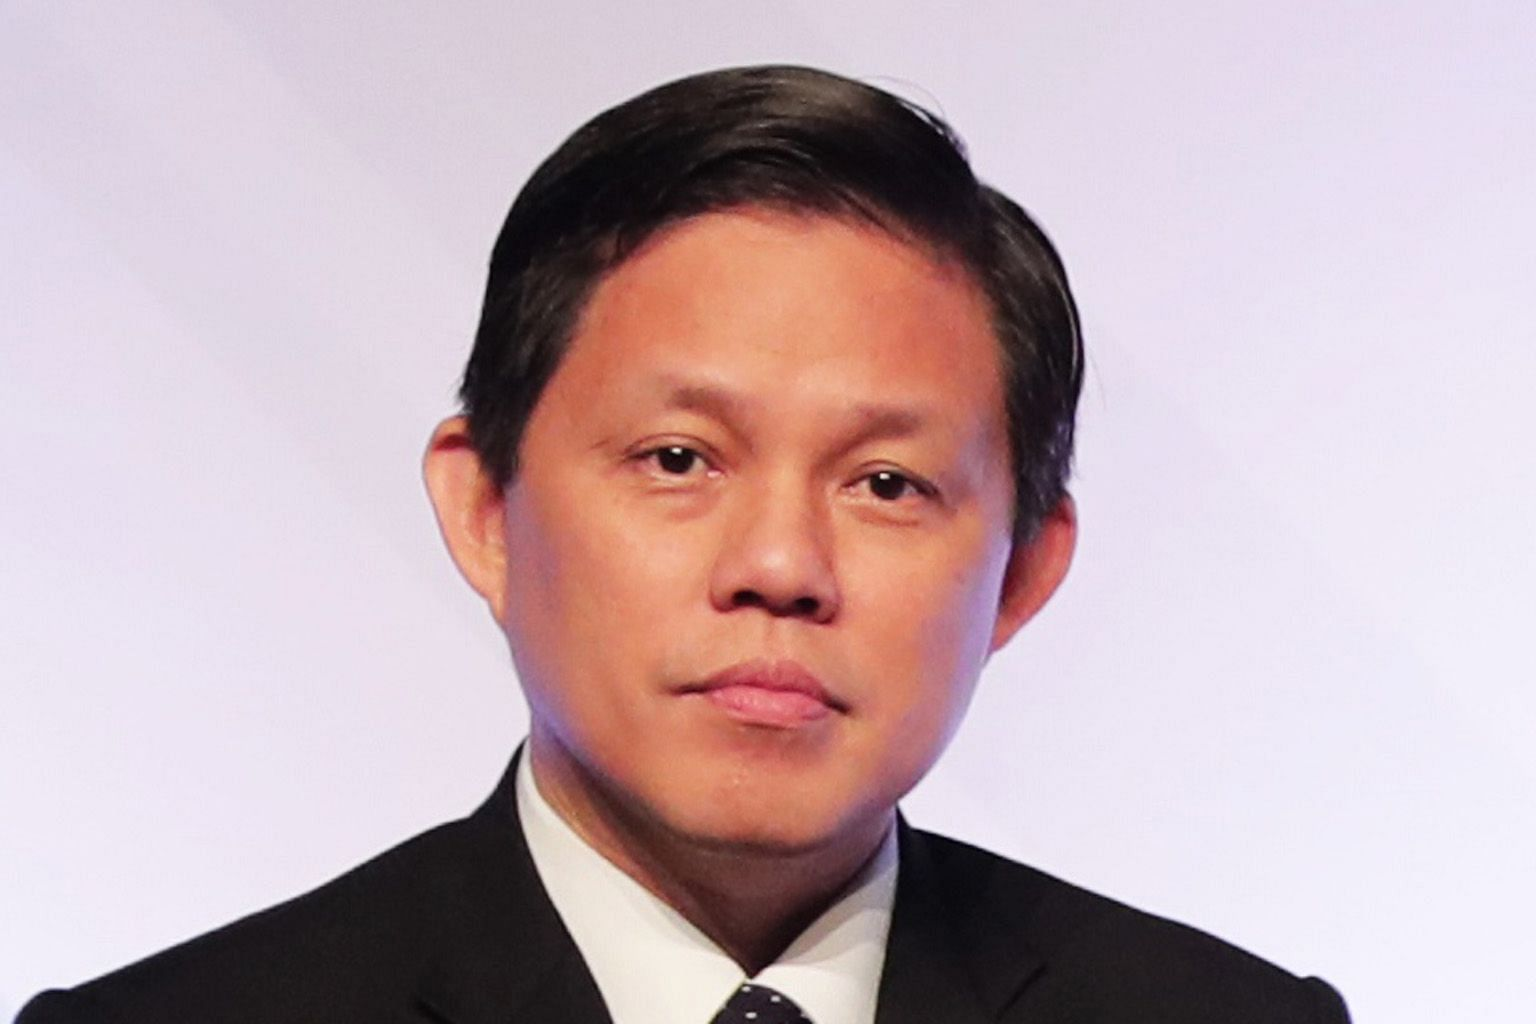 Trade and Industry Minister Chan Chun Sing also said it is key for Asean nations to resist populist policies and pressures.